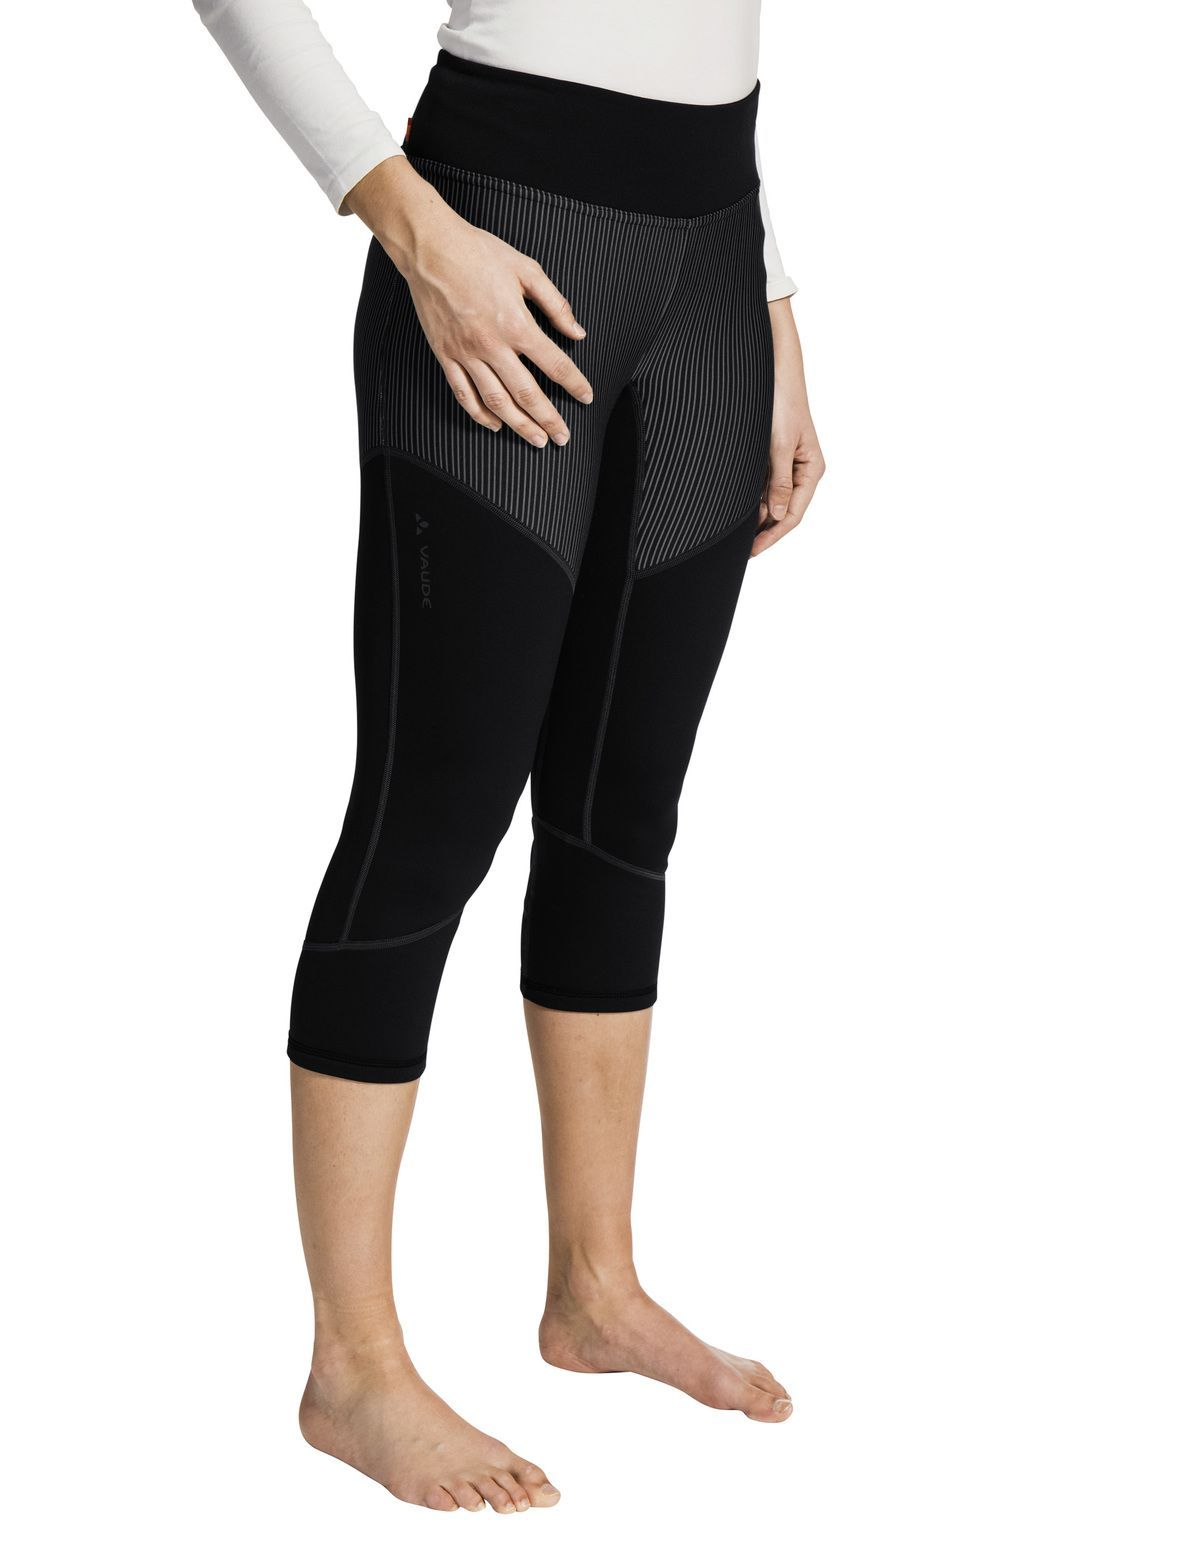 Vaude - W's Back Bowl Fleece Pants - Warm 3/4 fleece base-layer pants - Weekendbee - sustainable sportswear